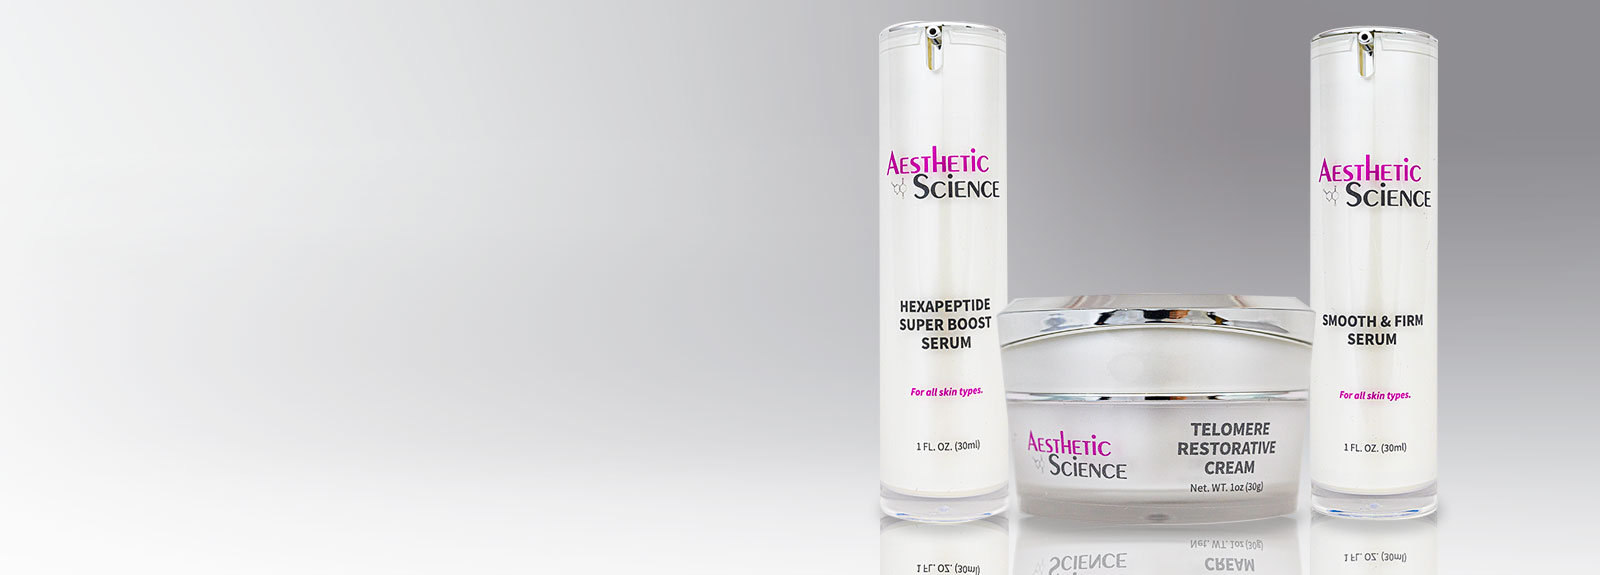 Aesthetic Science Skincare's professional assorted Younger Looking Skin products from their professional skincare product line